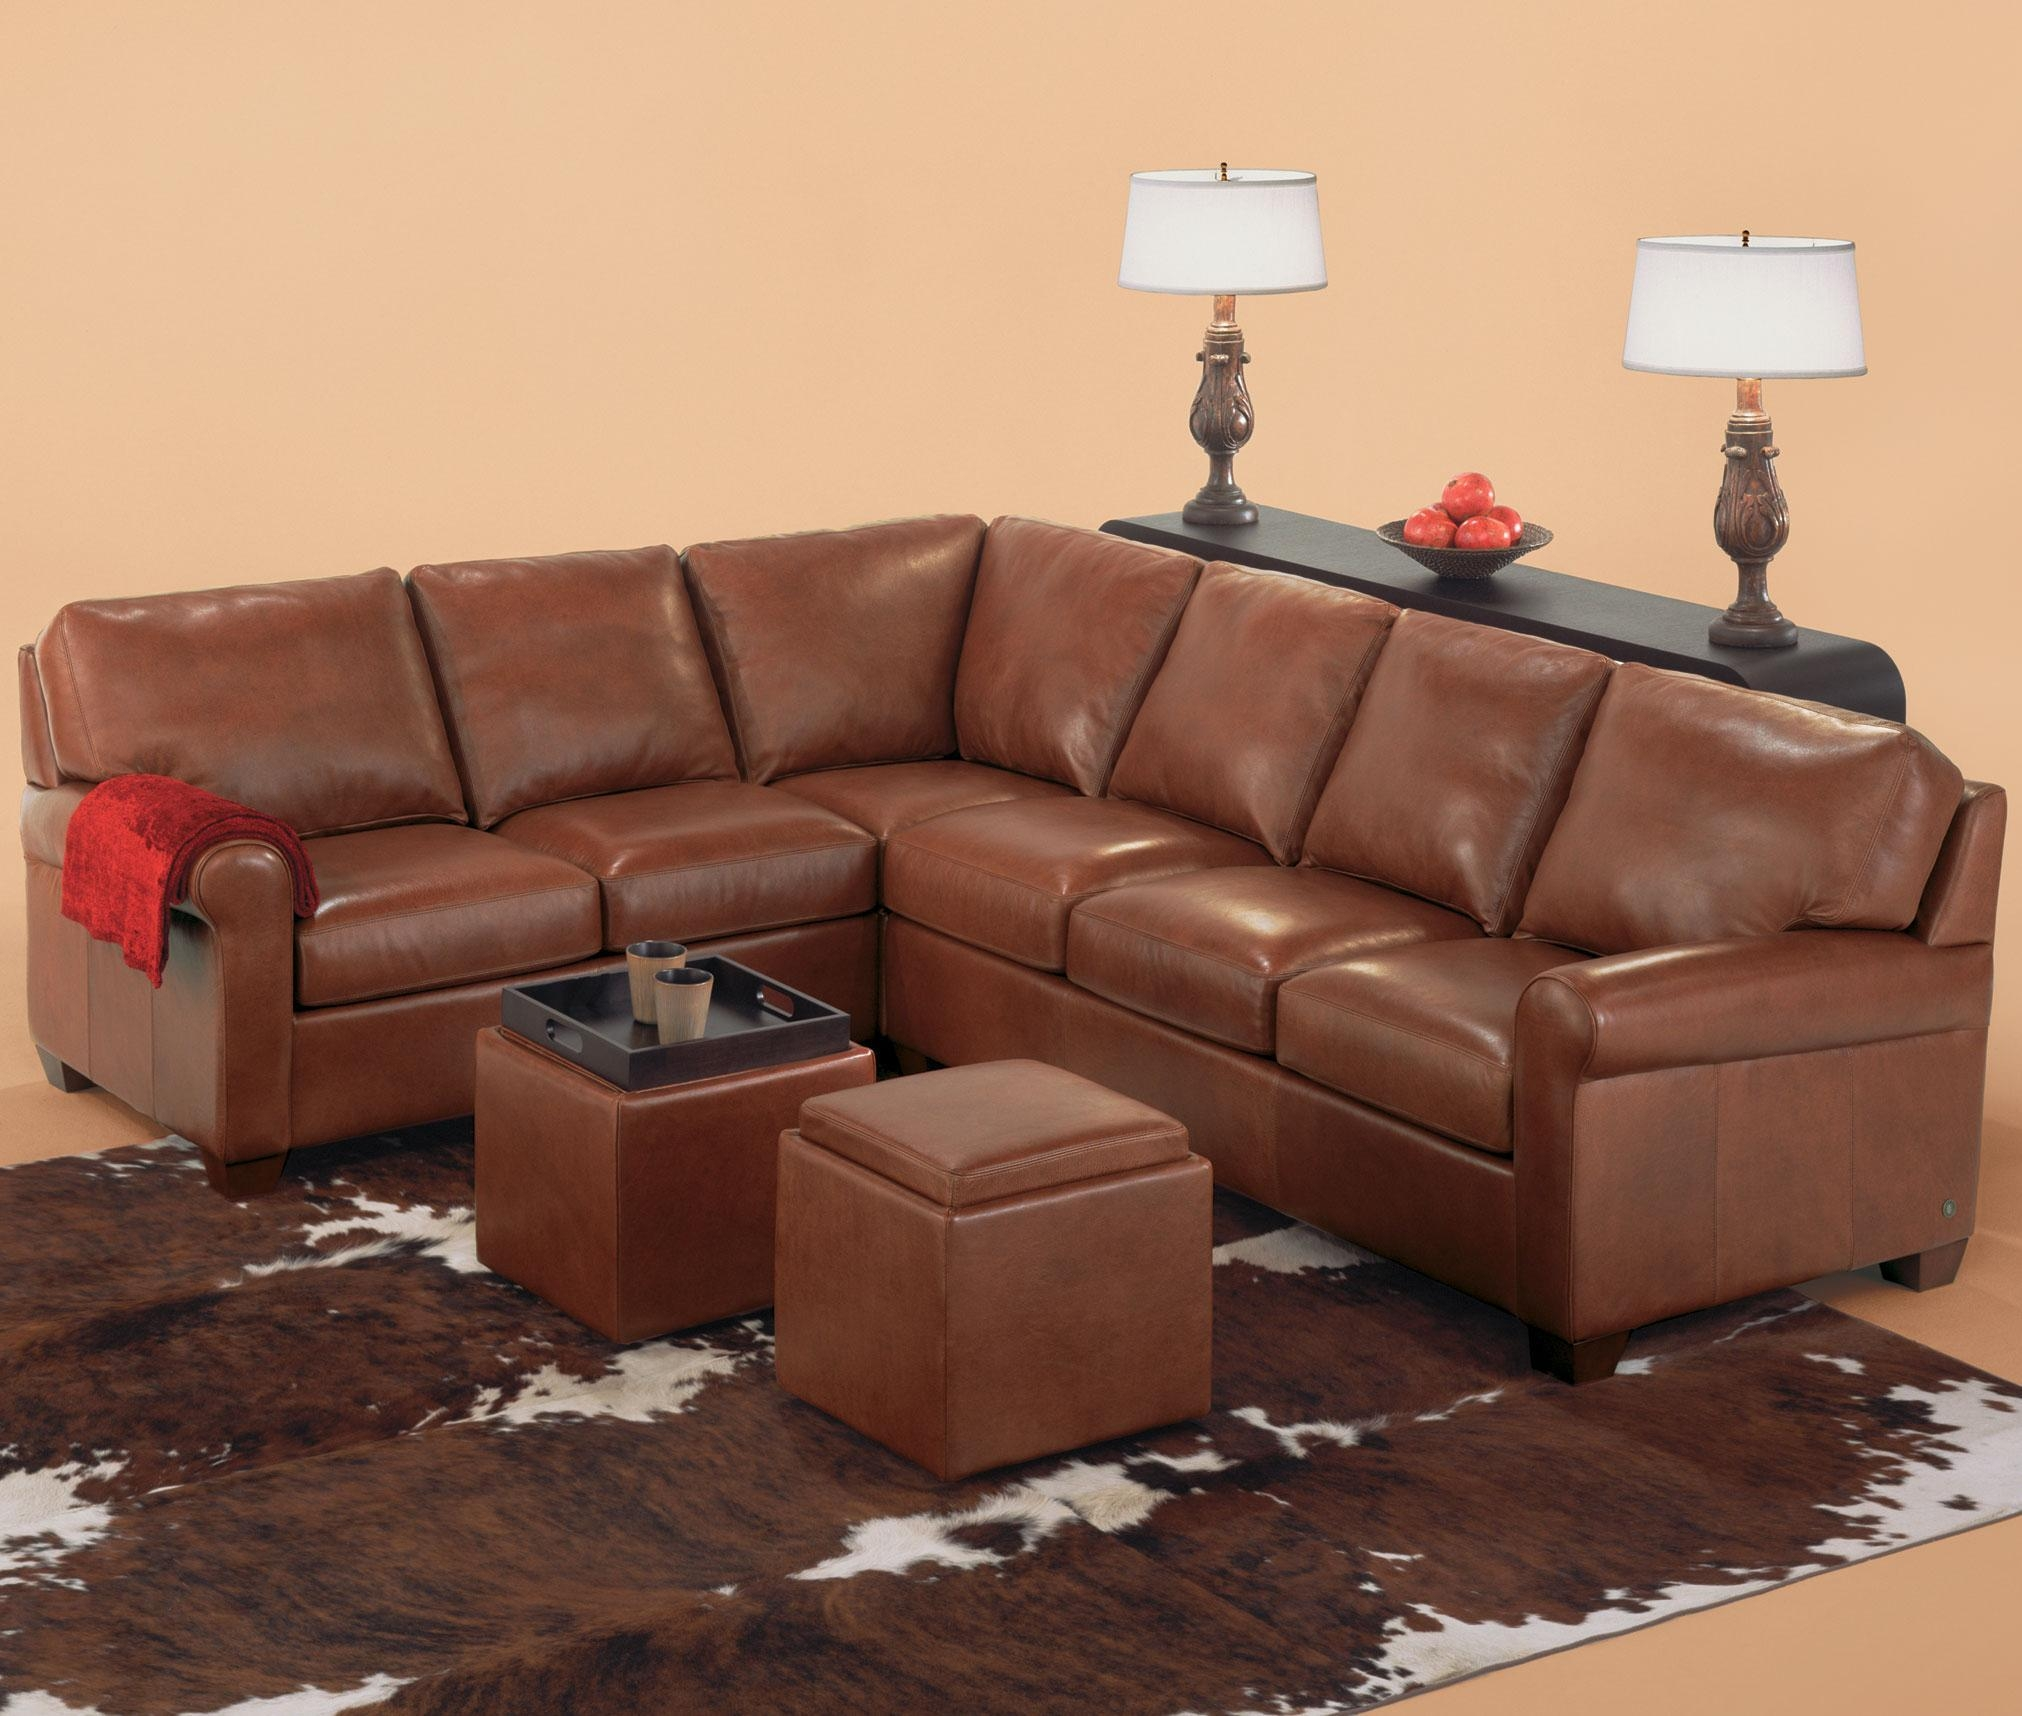 American Leather Savoy Contemporary 3 Piece Sectiona – Saugerties For Savoy Leather Sofas (View 11 of 20)